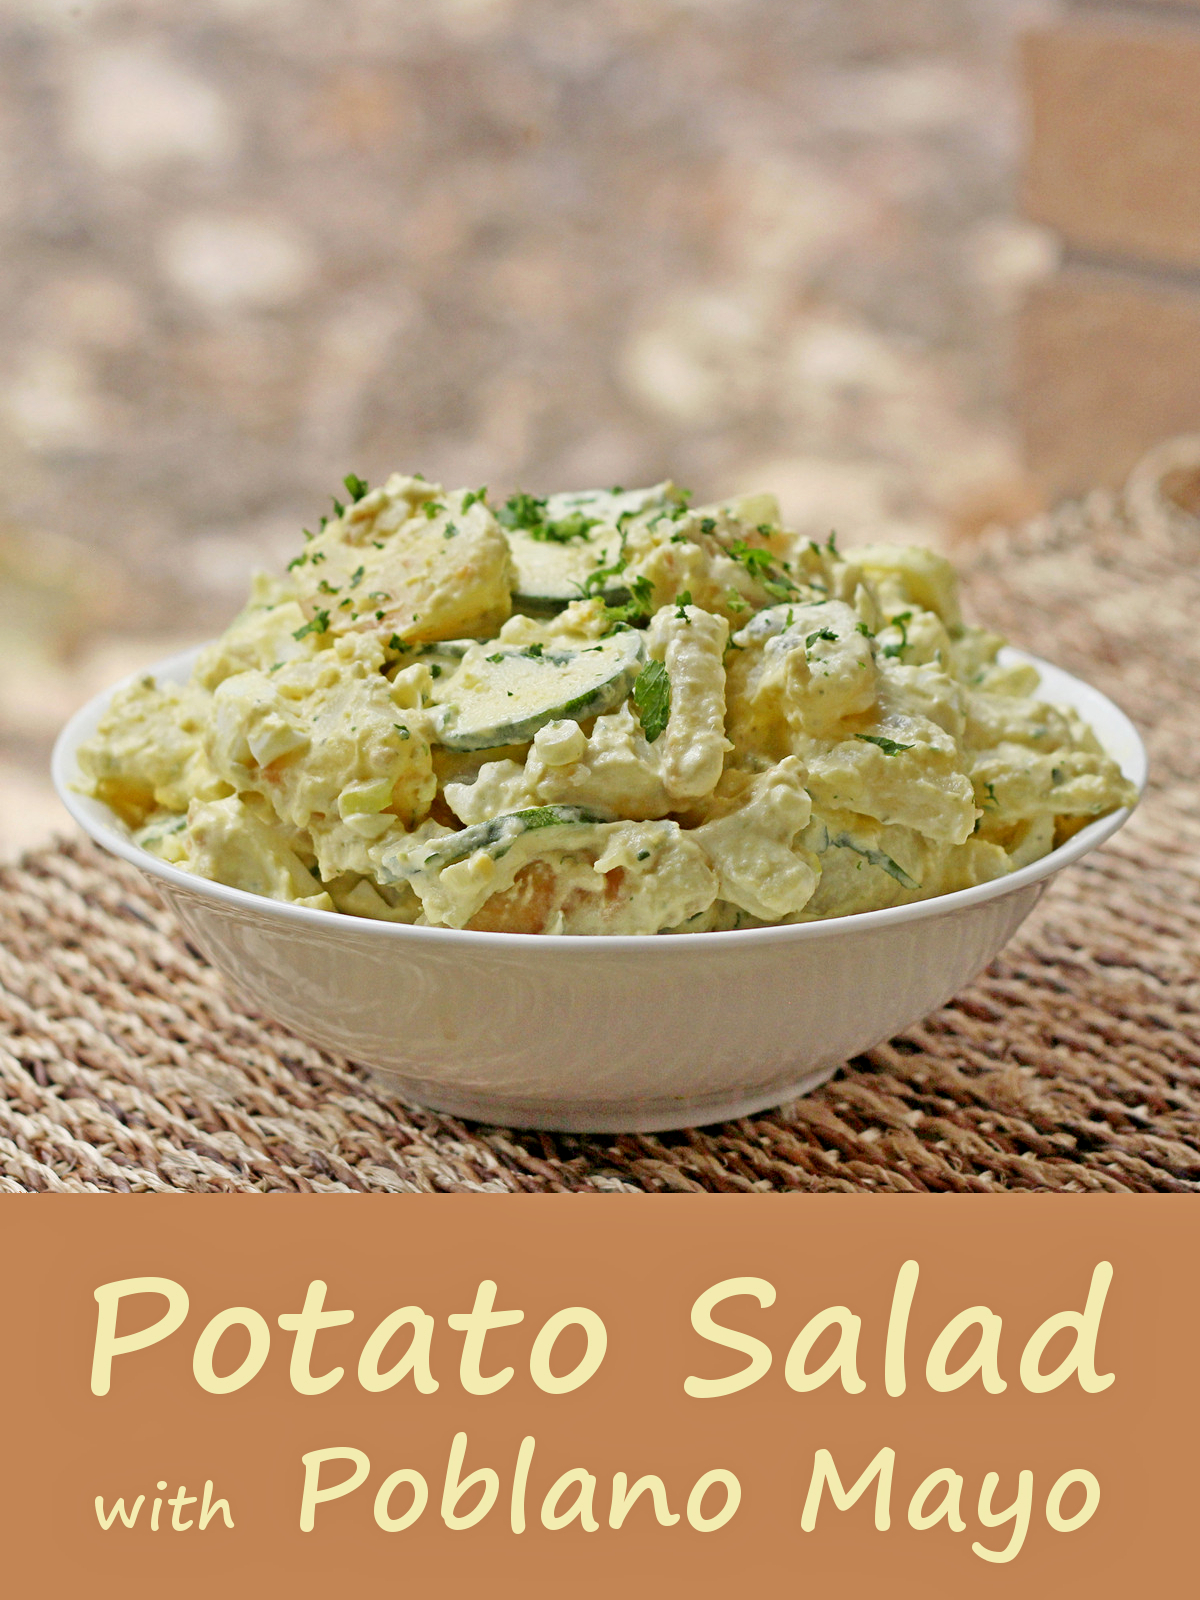 Idaho potato salad with poblano mayo